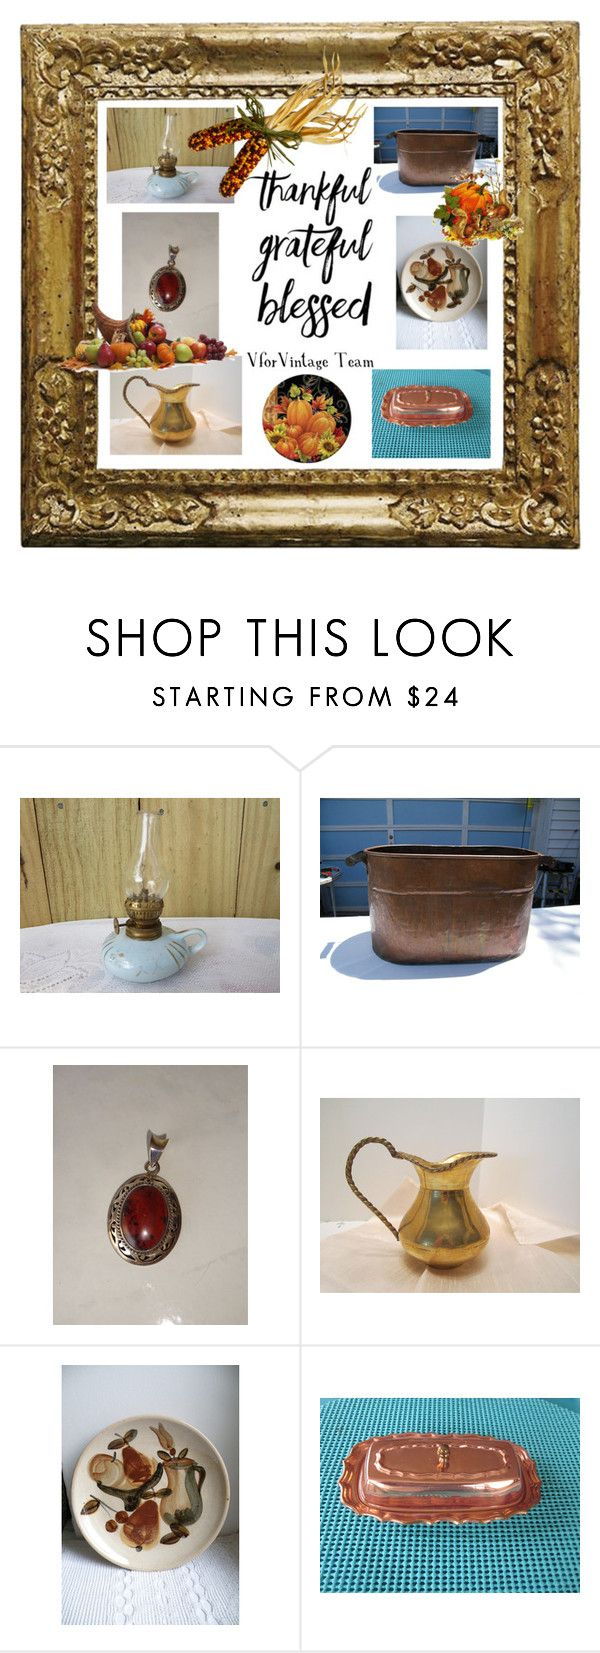 VforVintage - Thanksgiving by jamscraftcloset on Polyvore featuring interior, interiors, interior design, дом, home decor, interior decorating and vintage